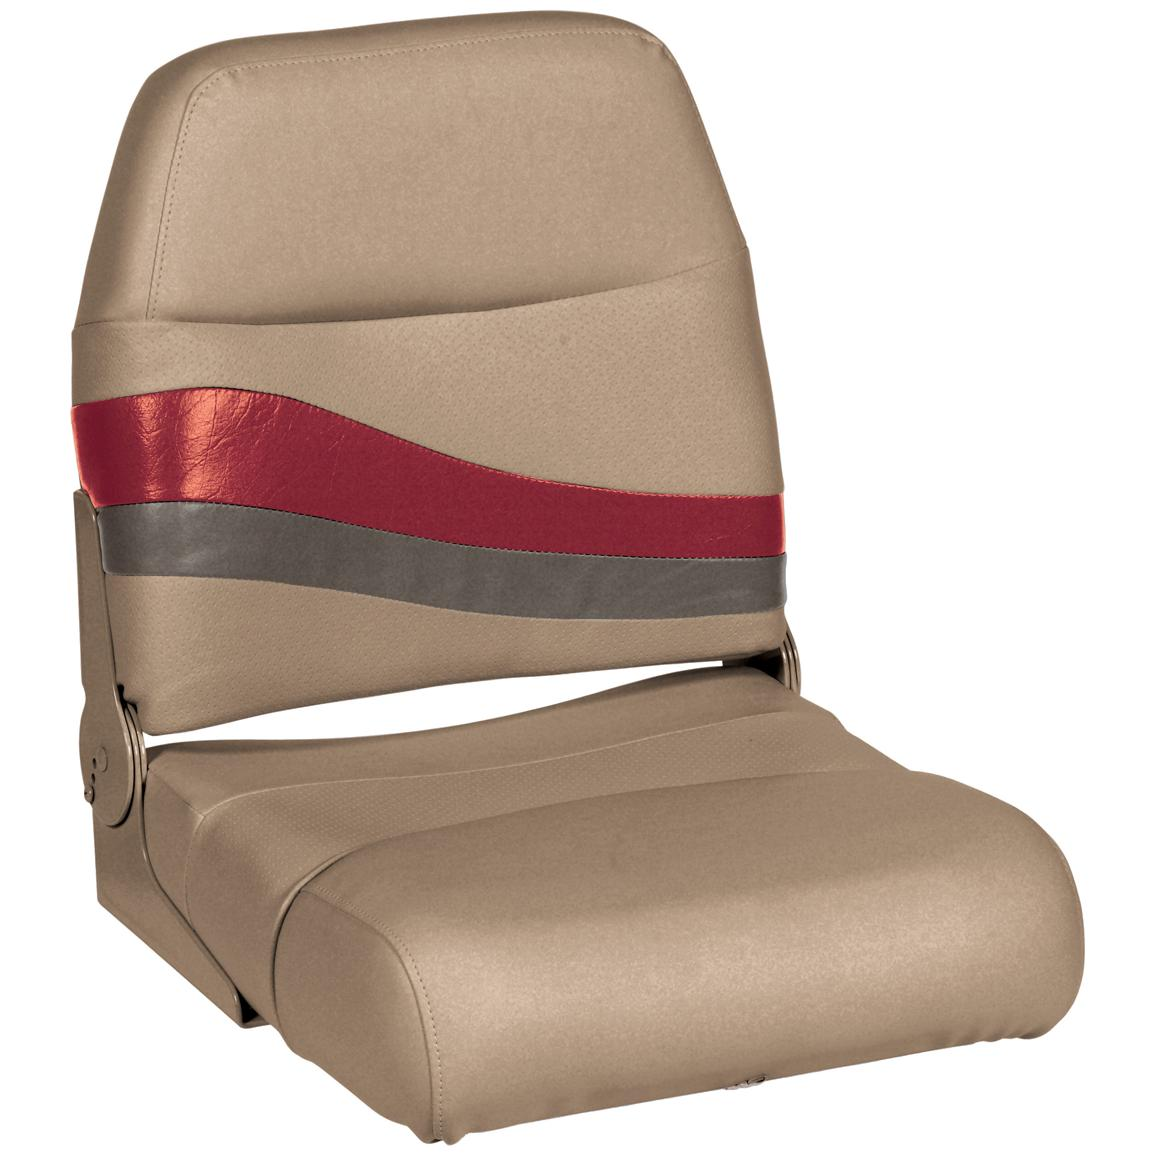 Wise® Premier 1100 Series Pontoon Fishing Seat, Color E